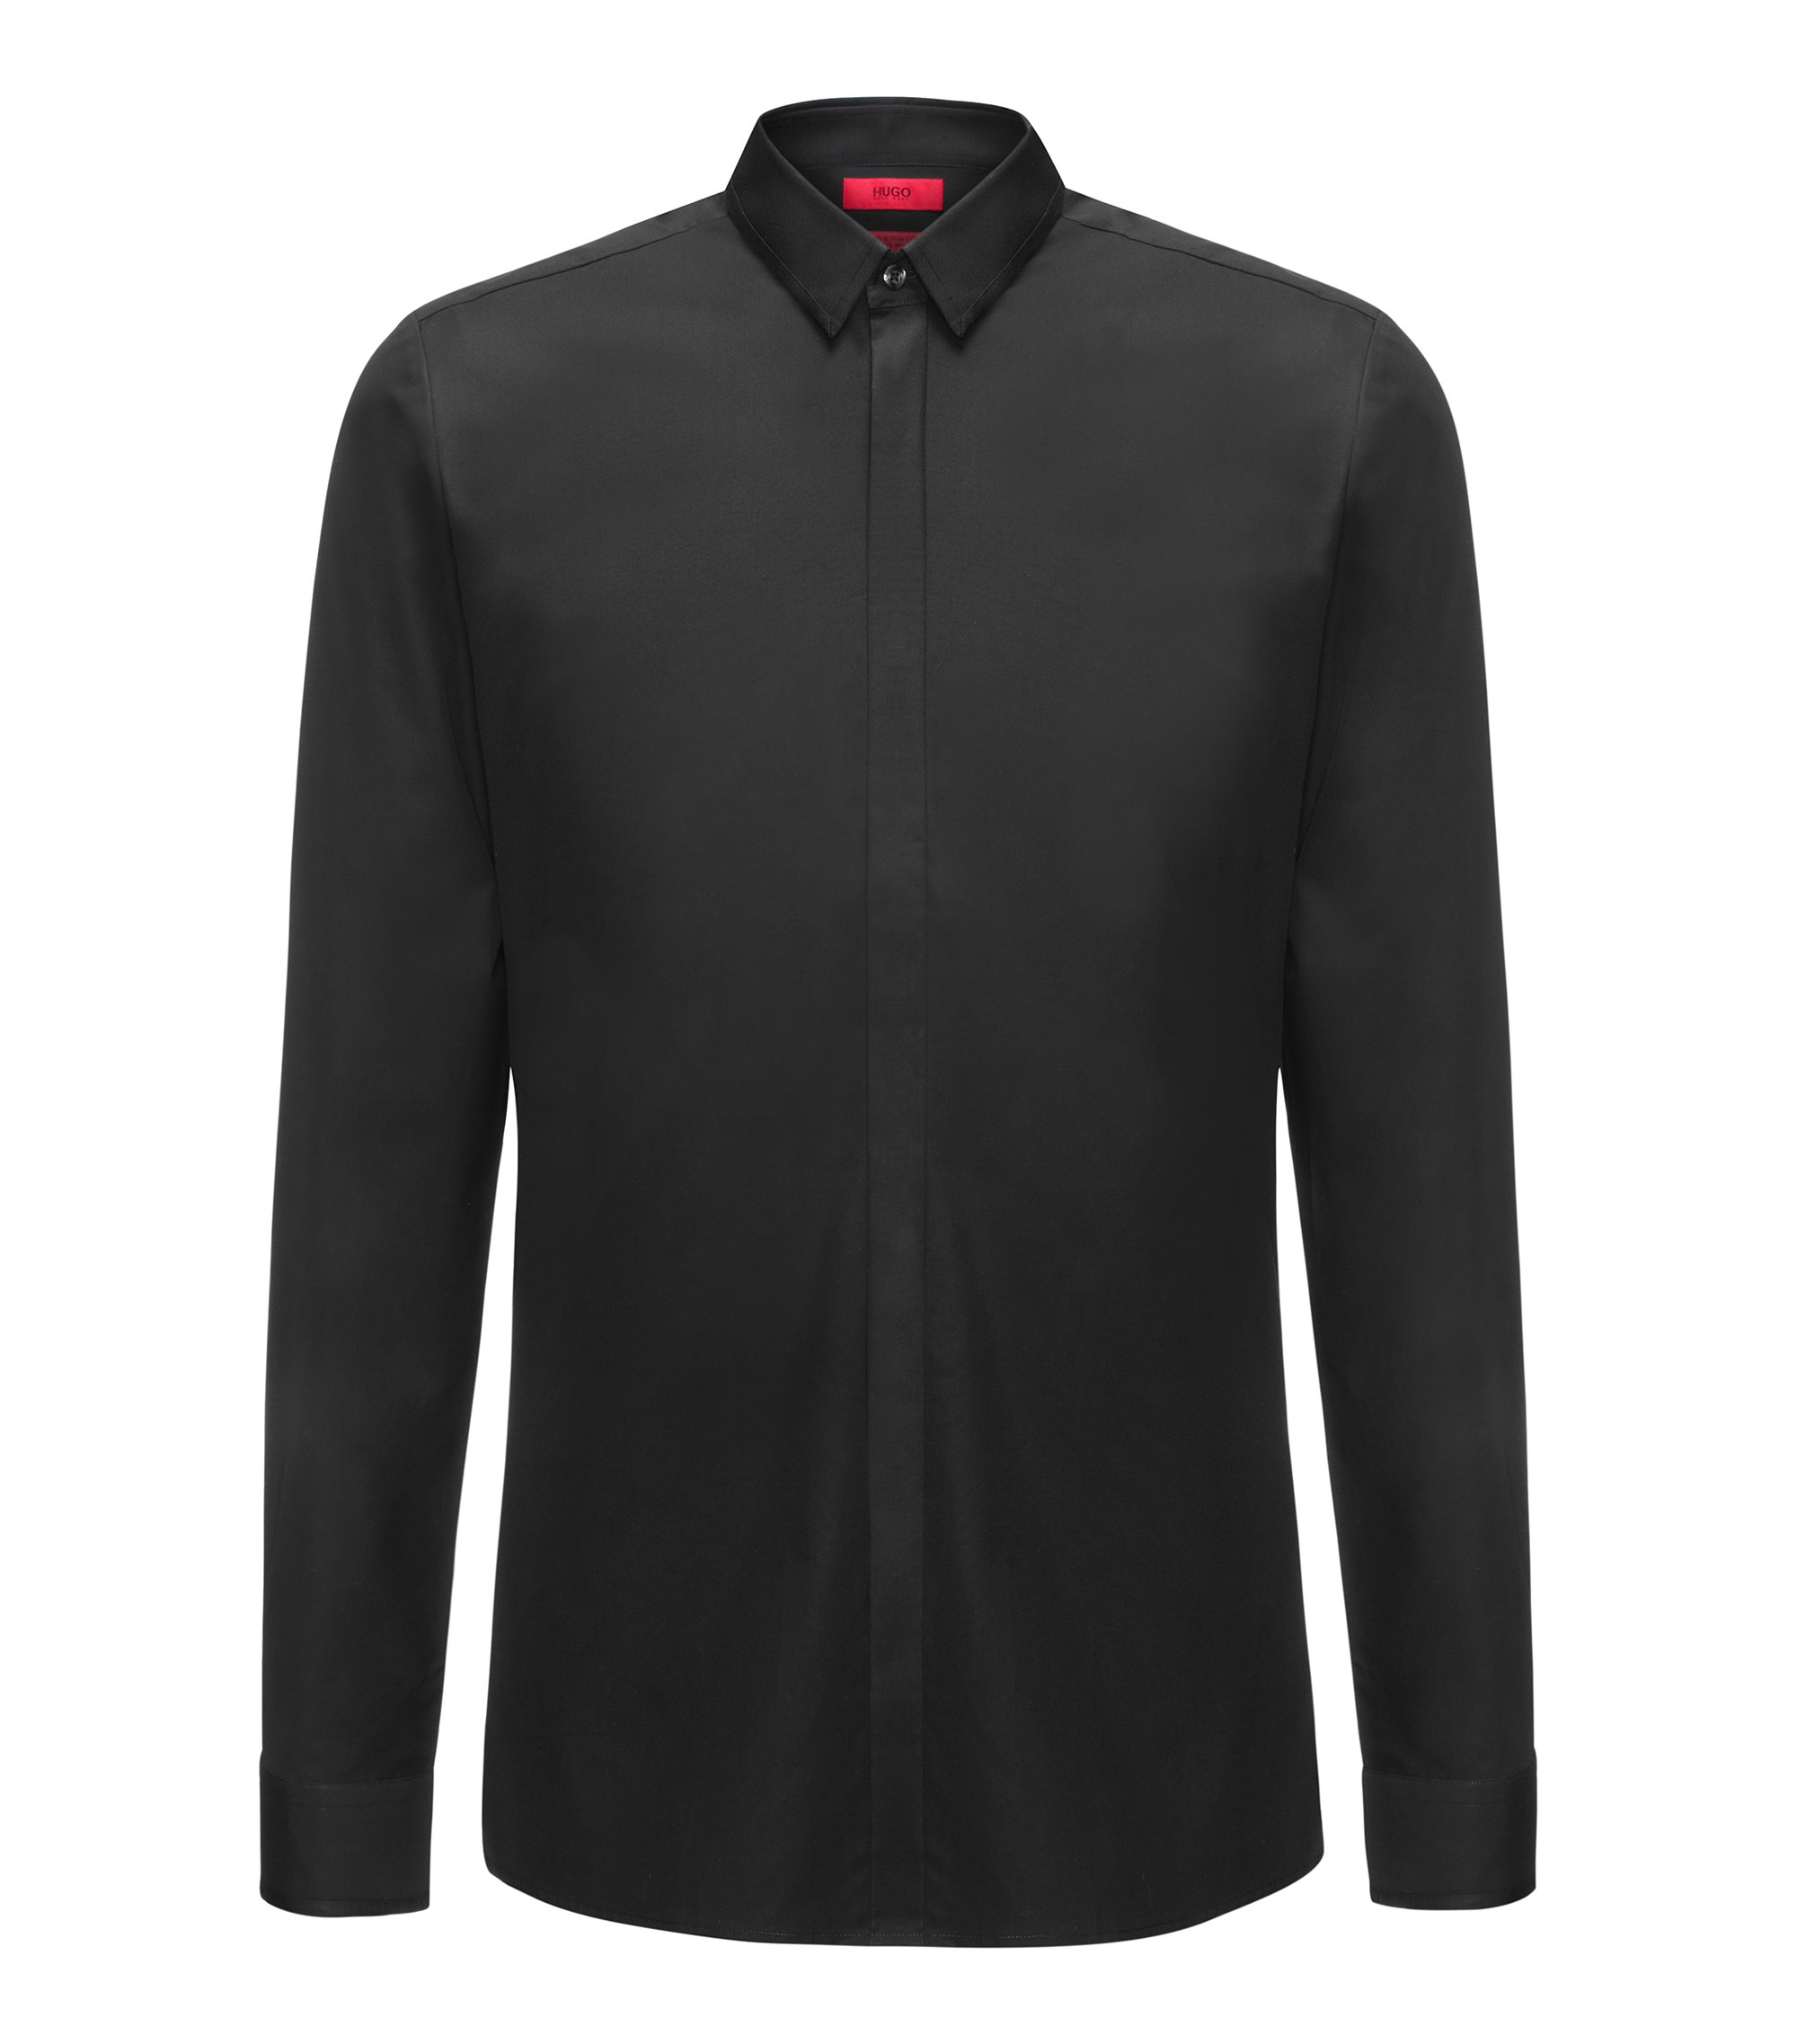 Easy-Iron Cotton Dress Shirt, Extra Slim Fit | Ebow, Black